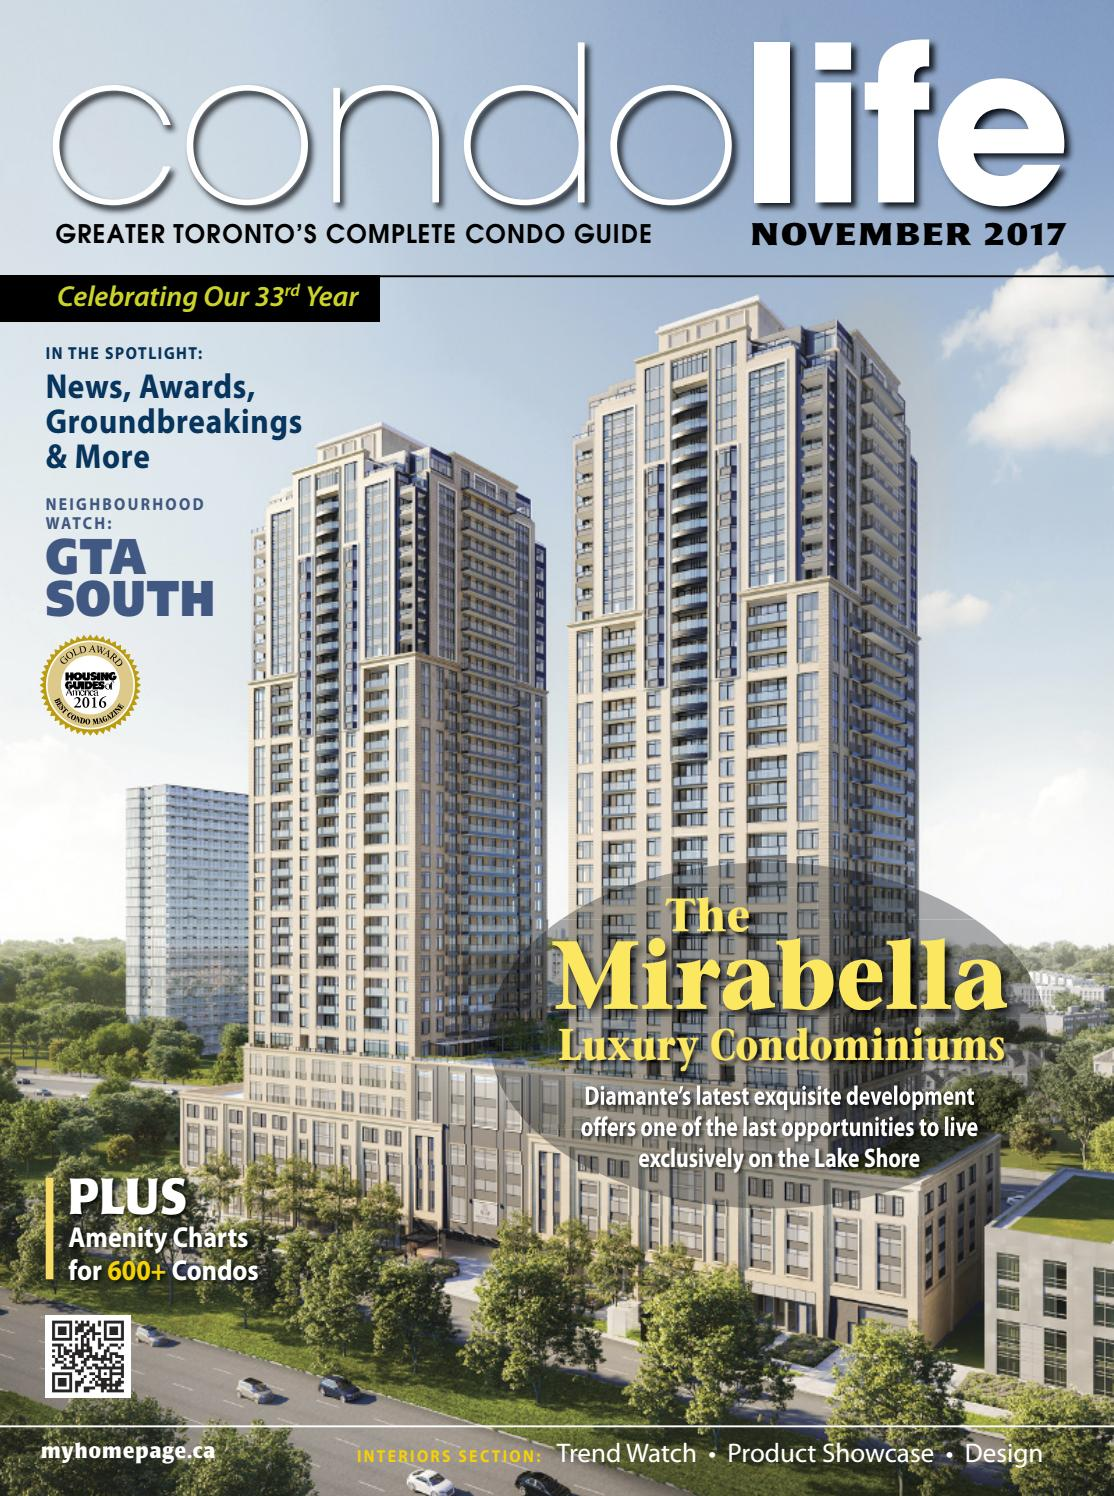 Condo investment toronto 2021 medals kpmg investment